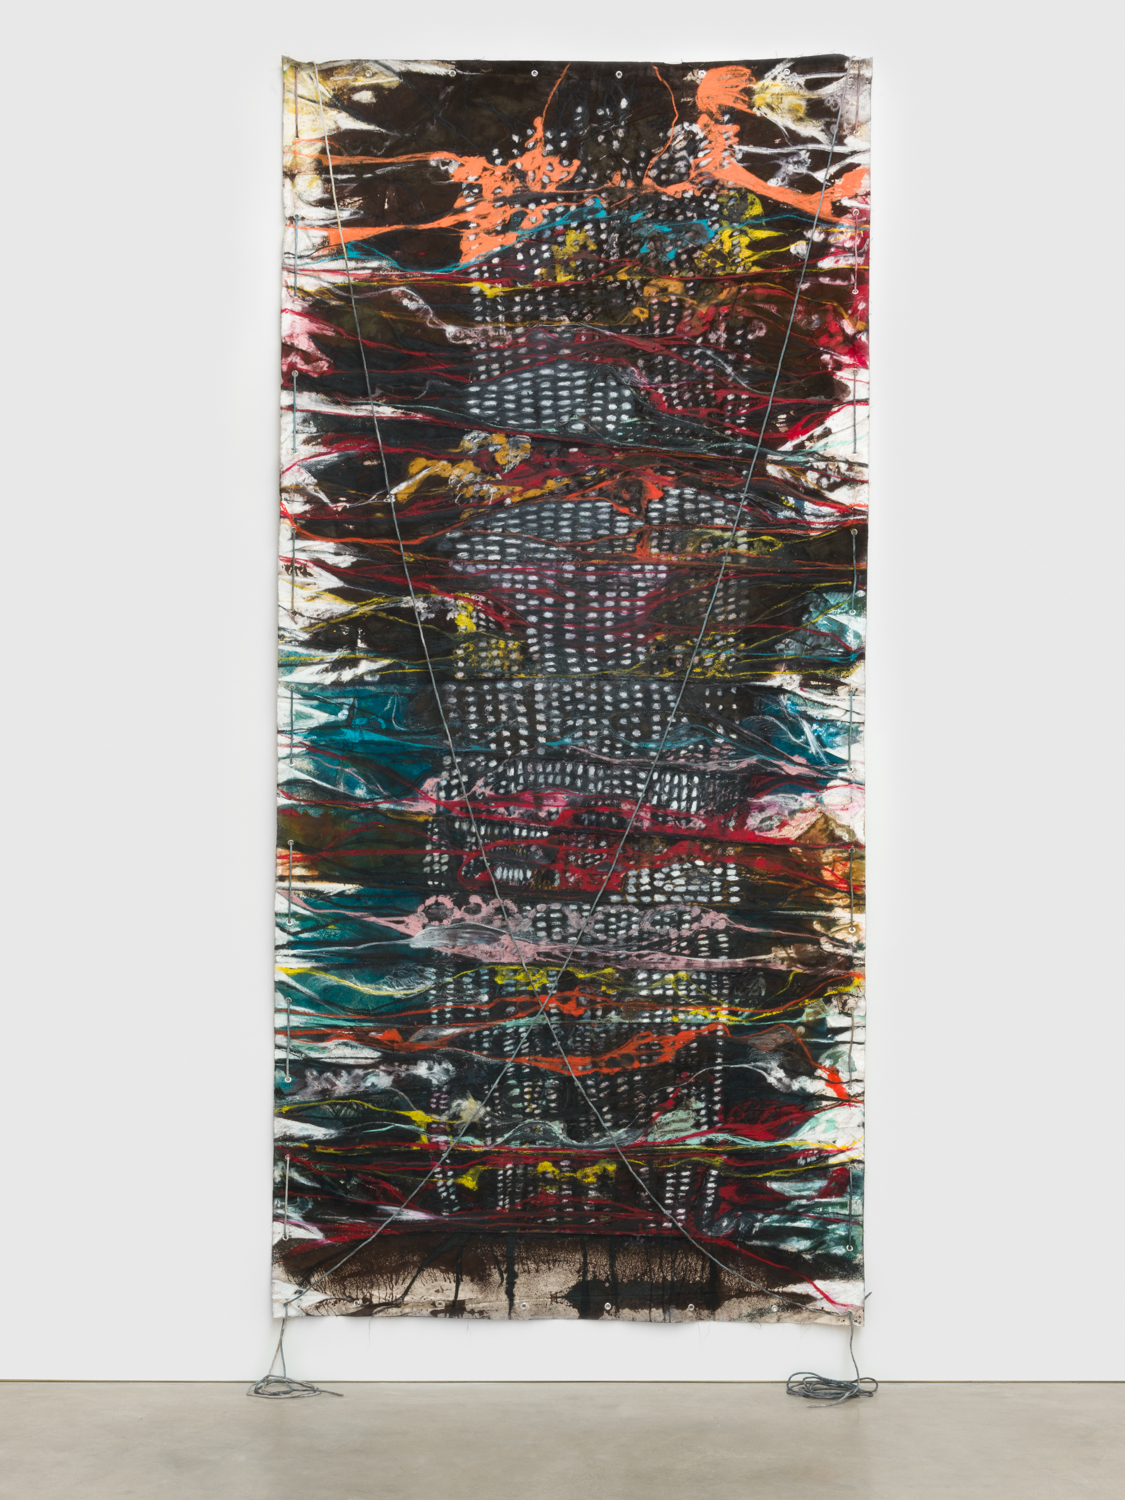 Naotaka Hiro Untitled (Breaking the Waves), 2018 Canvas, fabric dye, oil pastel, rope and grommets 192h x 84w in NaoH036